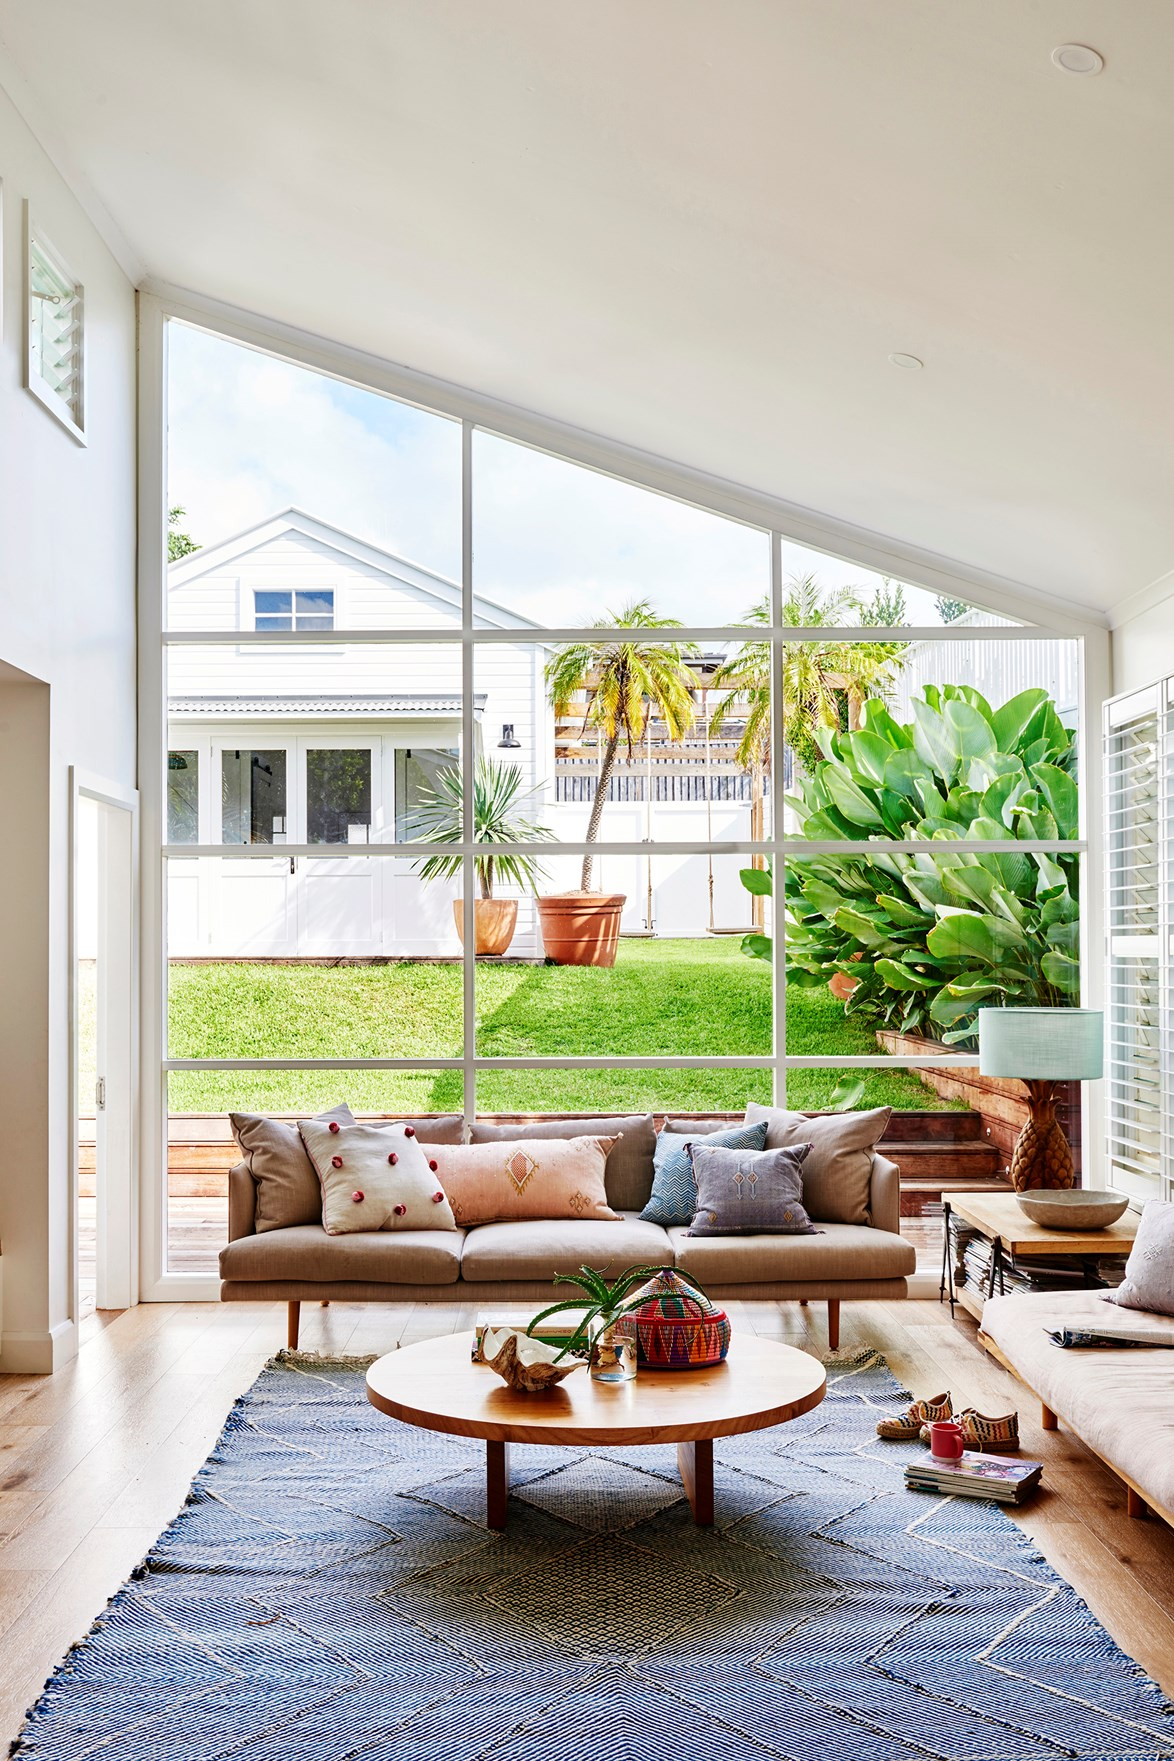 "A textured blue rug from Tigmi Trading adds colour and warmth to the breezy living room in this [Byron Bay home](https://www.homestolove.com.au/coastal-cottage-byron-bay-20442|target=""_blank"")."